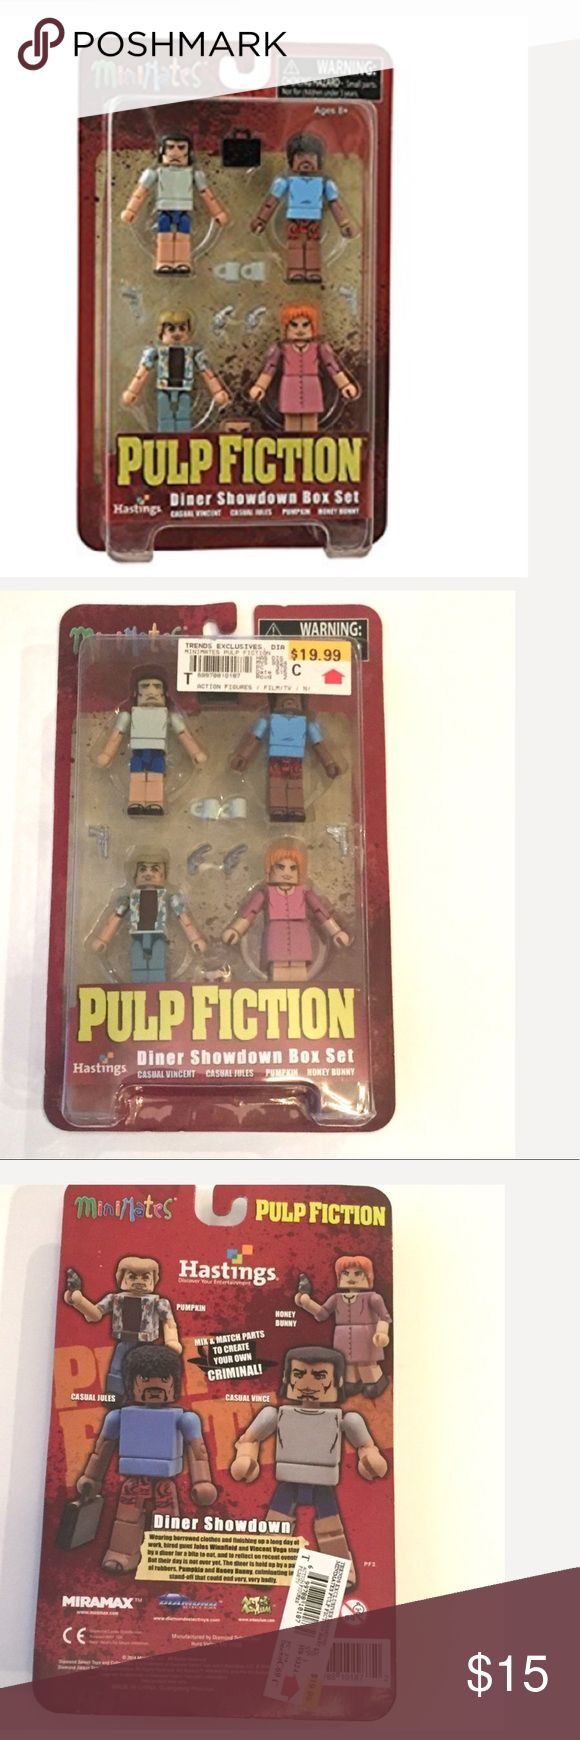 New Minimates Pulp Fiction figurines. New Minimates Pulp Fiction figurines.  Diamond Select Toys Pulp Fiction 20th Anniversary: Diner Showdown Minimates Box Set. The set contains casual versions Jules and Vince. Also in the set are Pumpkin and Honey Bunny. Hot Topic Other